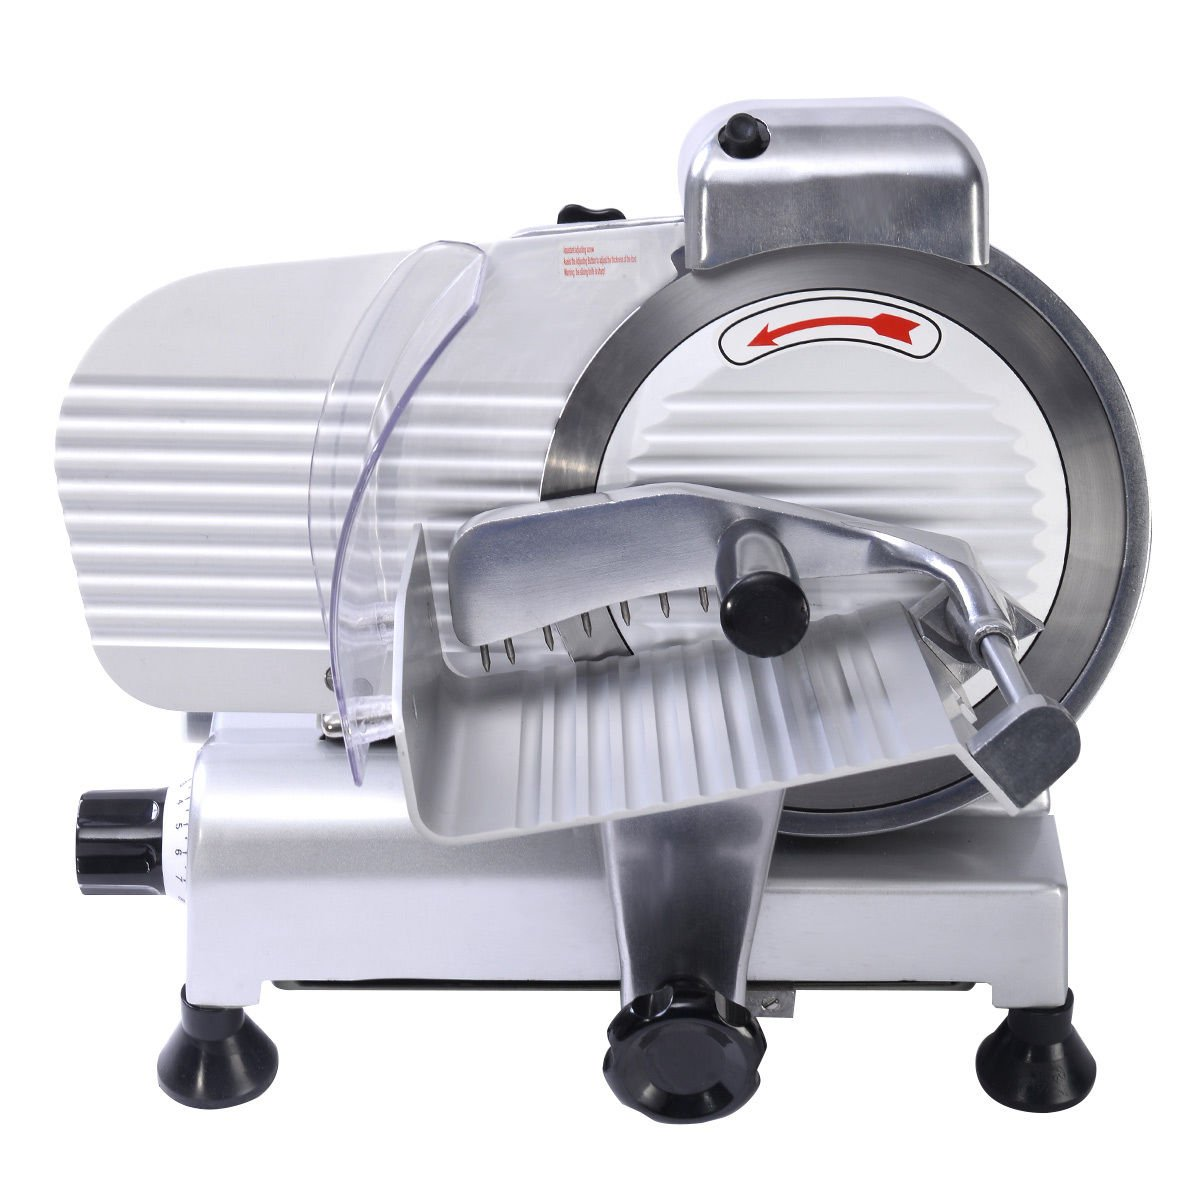 Commercial Meat Slicer Deli Meat Cheese Slicer